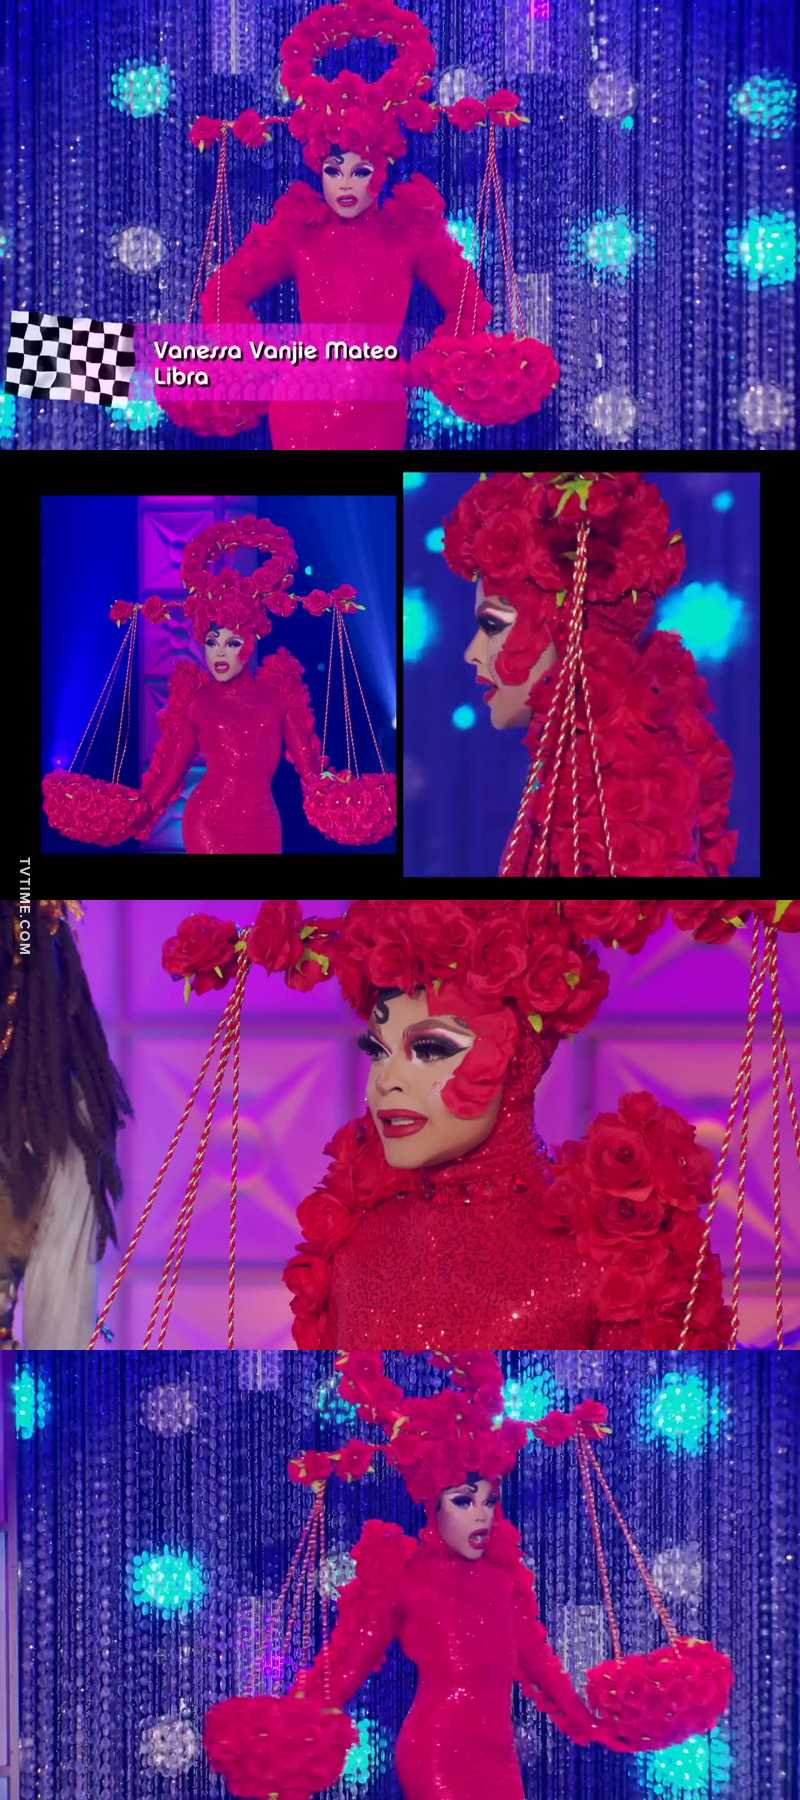 Miss Vanjie's outfit in this episode is all I need for my birthday this October 14th #Libra